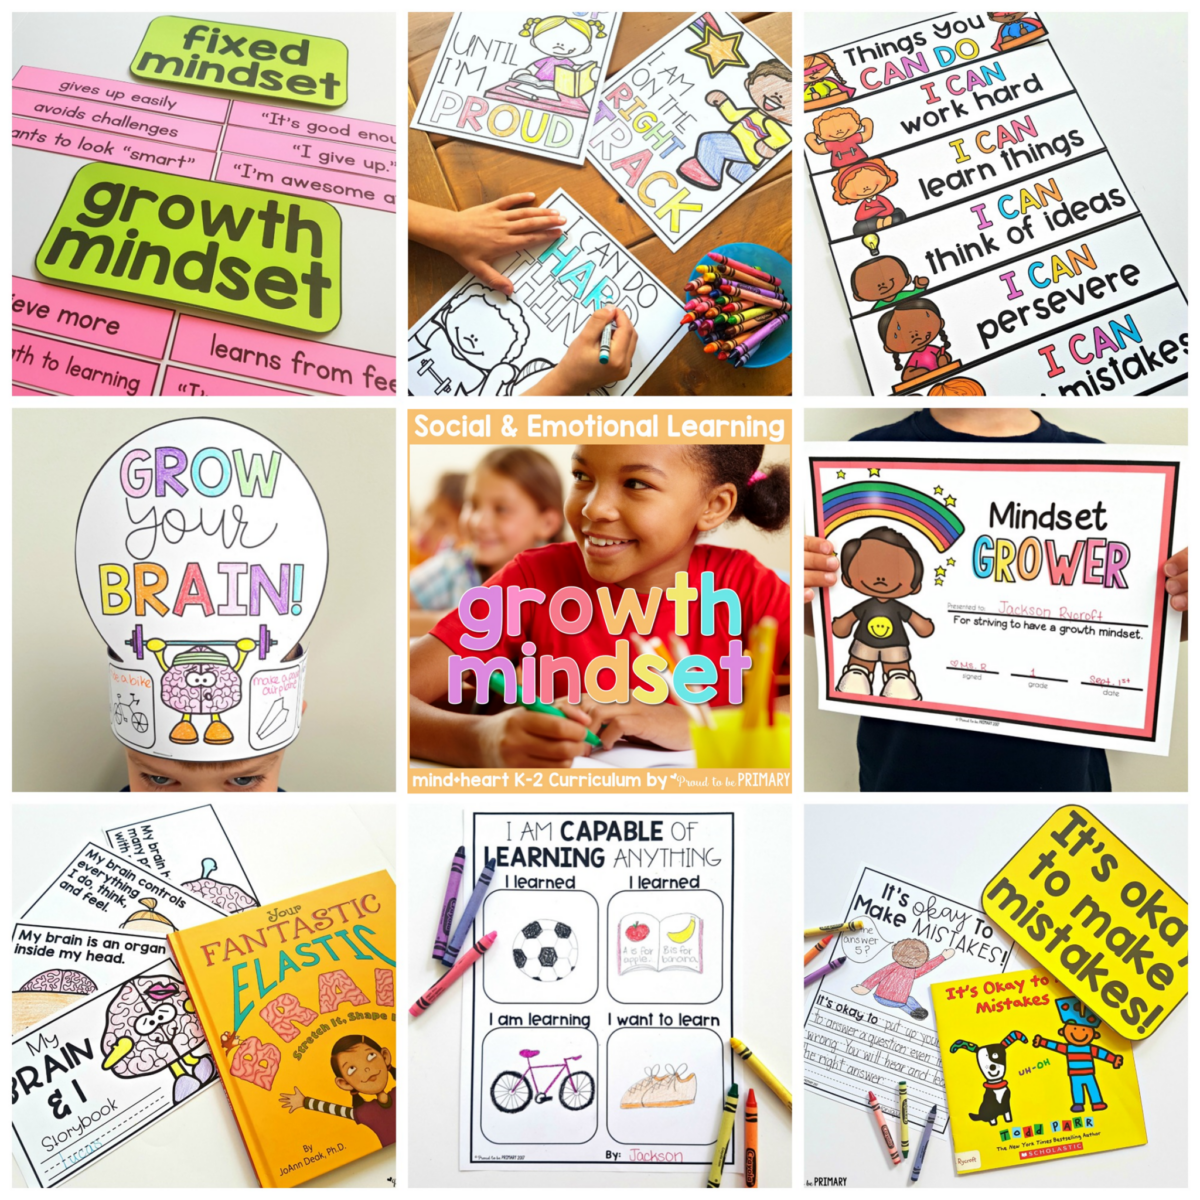 teaching growth mindset in the classroom with a growth mindset unit for K-2